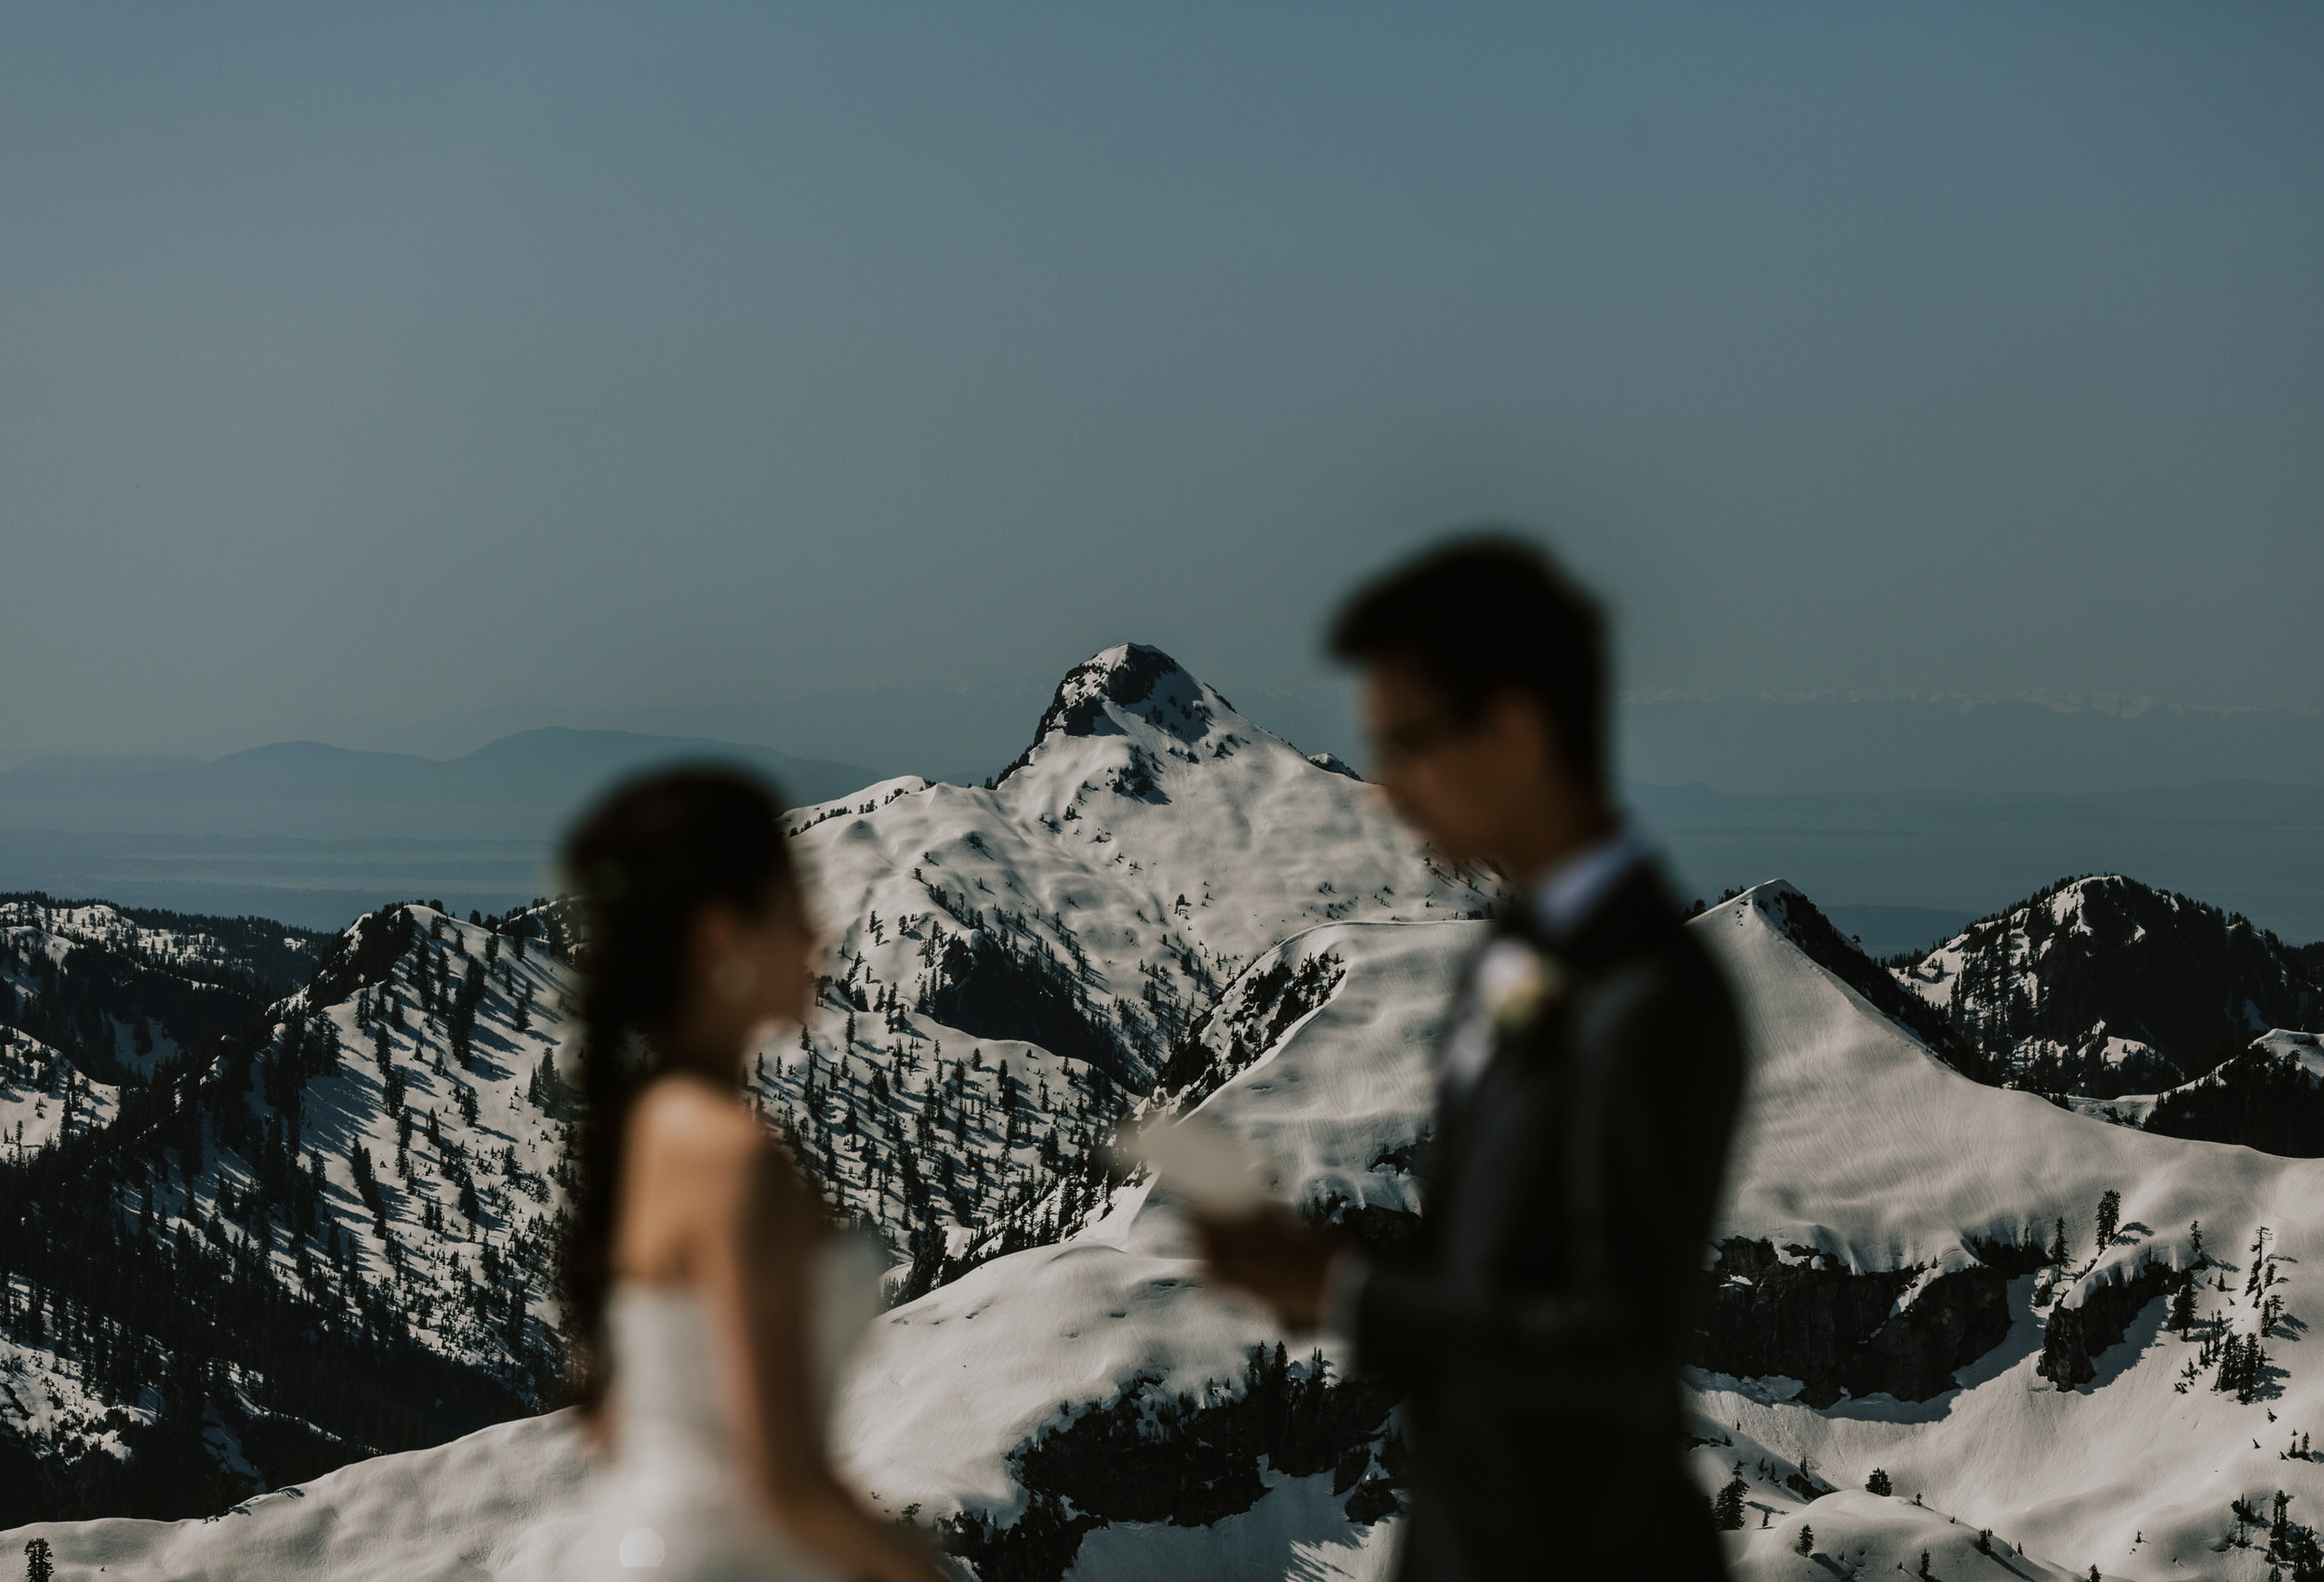 Helicopter Mountain Top Elopement in Pitt Meadows with Sky Helicopters - Snowy Mountaintop Elopement Photos